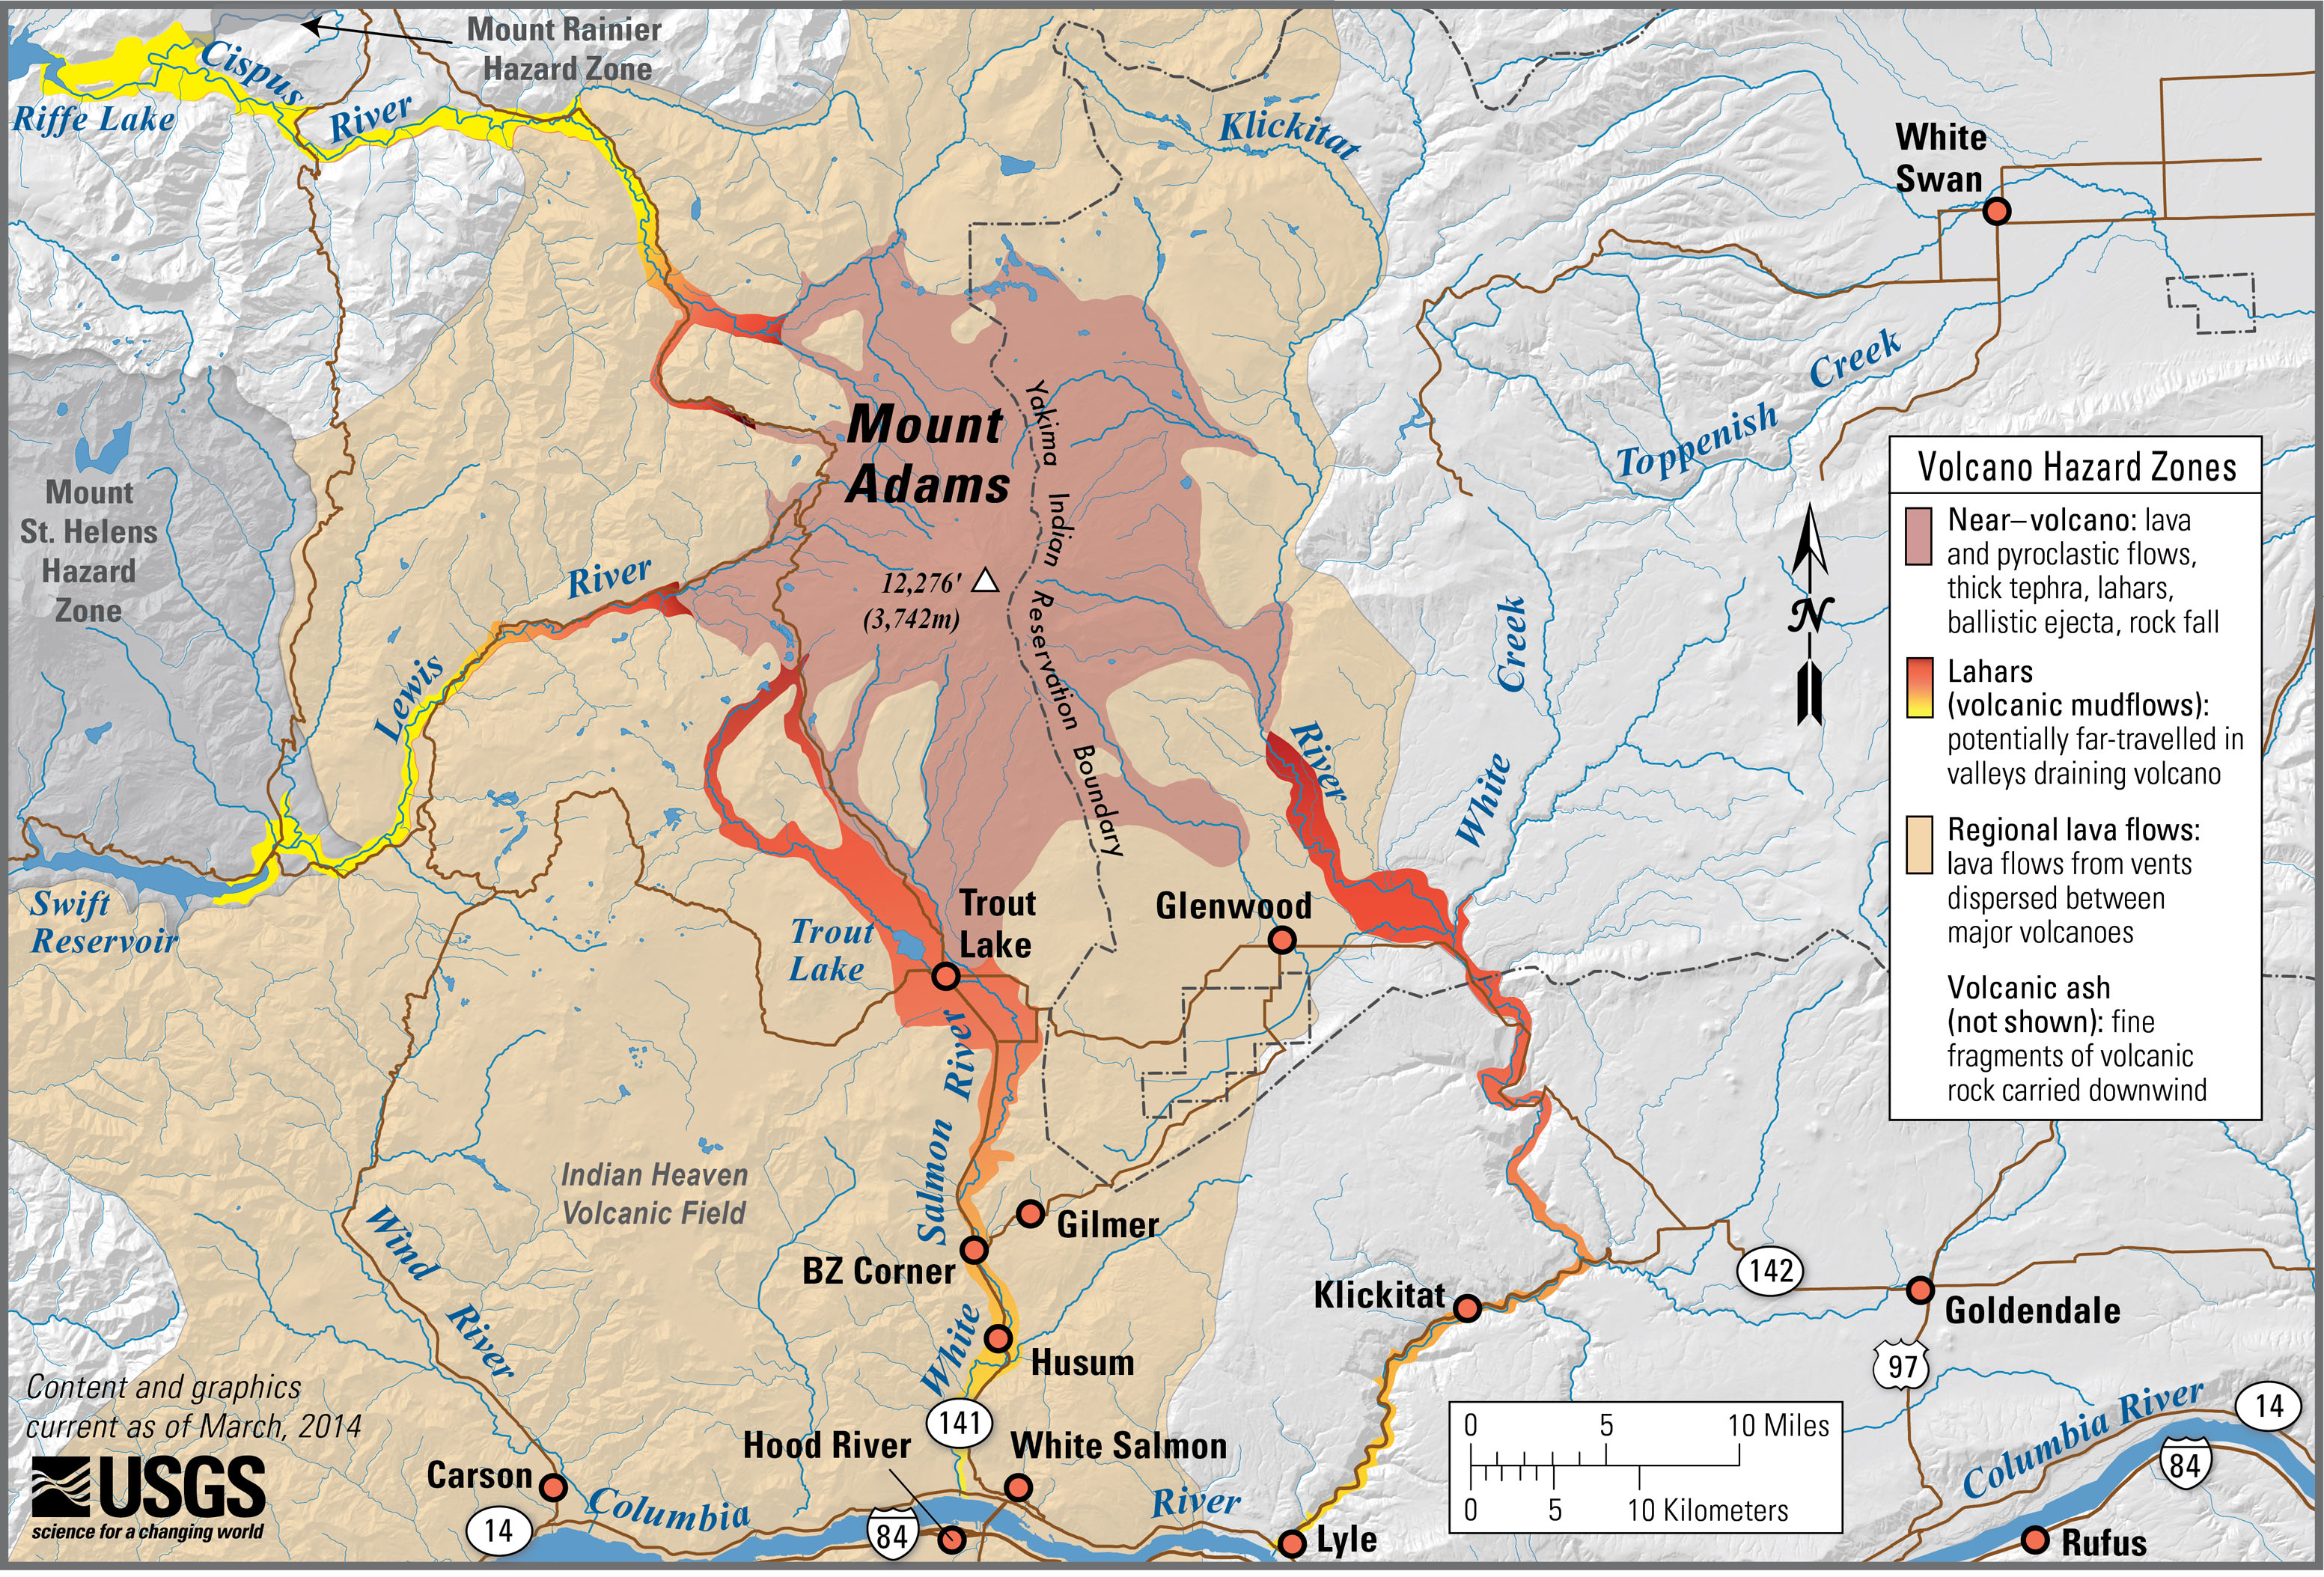 an overview of the hazards of mount adams a volcano in the cascade range Usgs: volcano hazards program - cascades volcano observatory usgs   mount adams has displayed a relatively limited range of eruptive styles   despite their low level of explosivity, eruptions at mount adams can be.